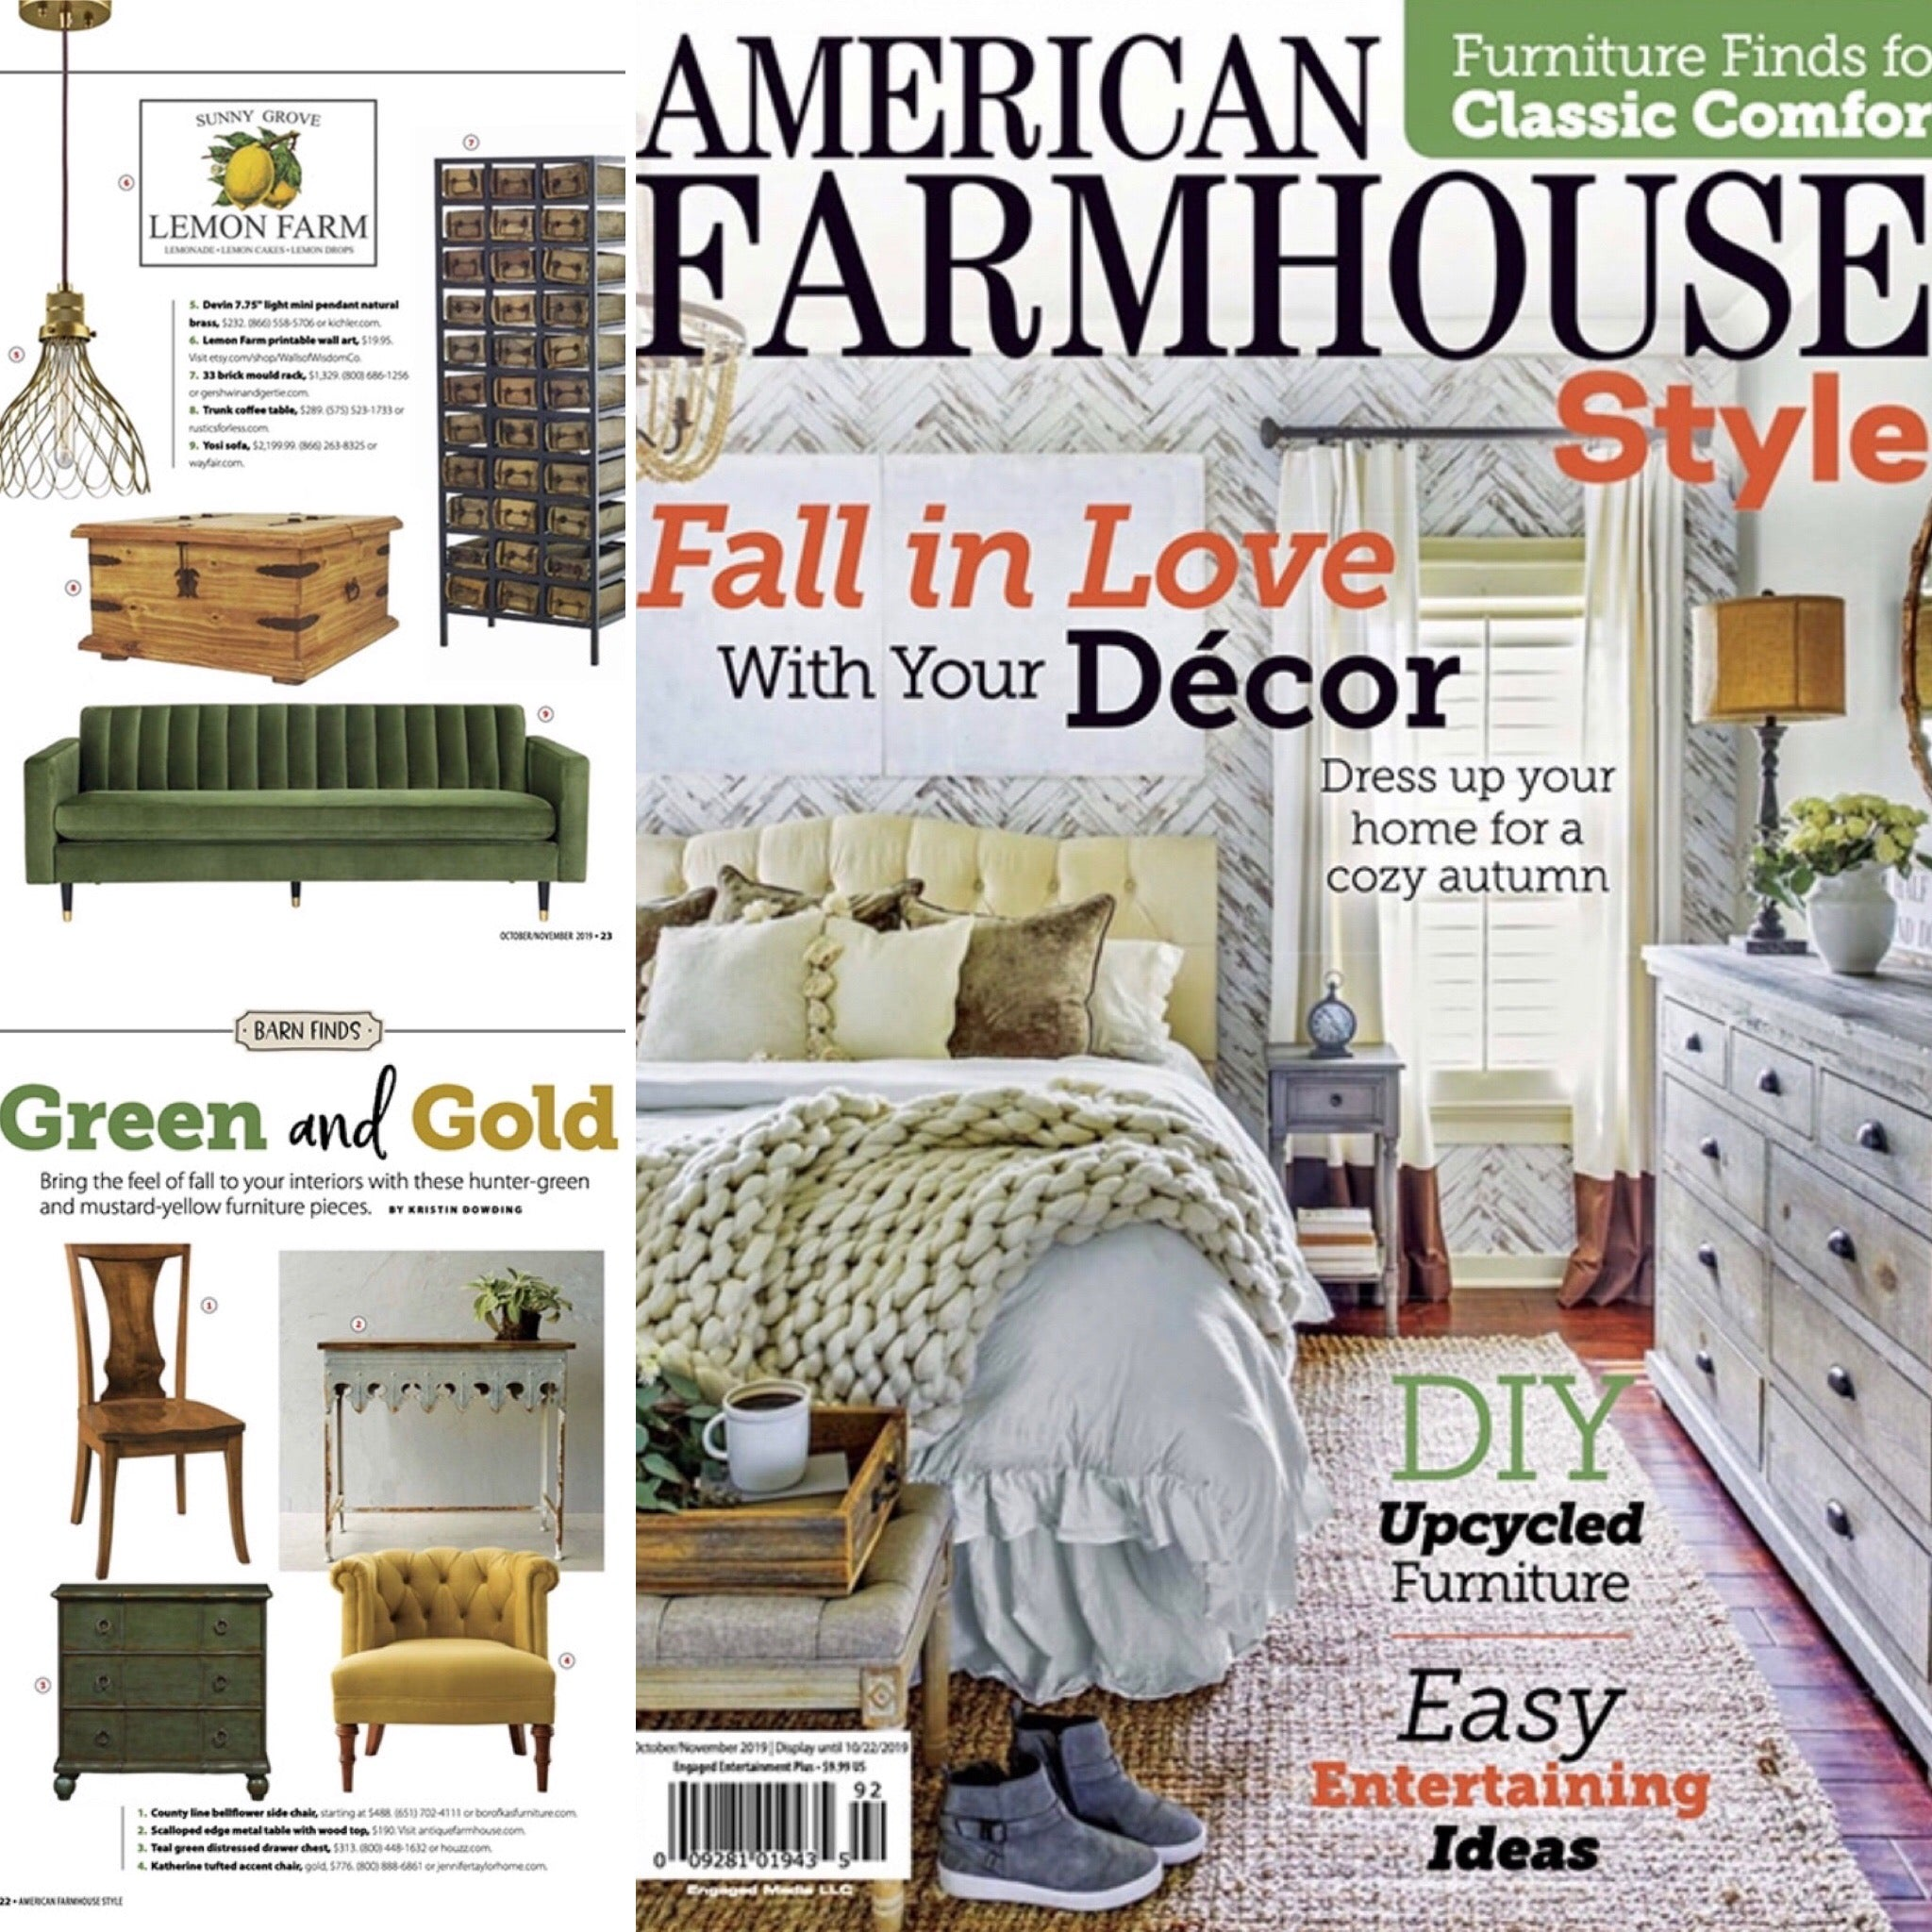 Fall in Love With Your Decor  / @americanfarmhousestyle